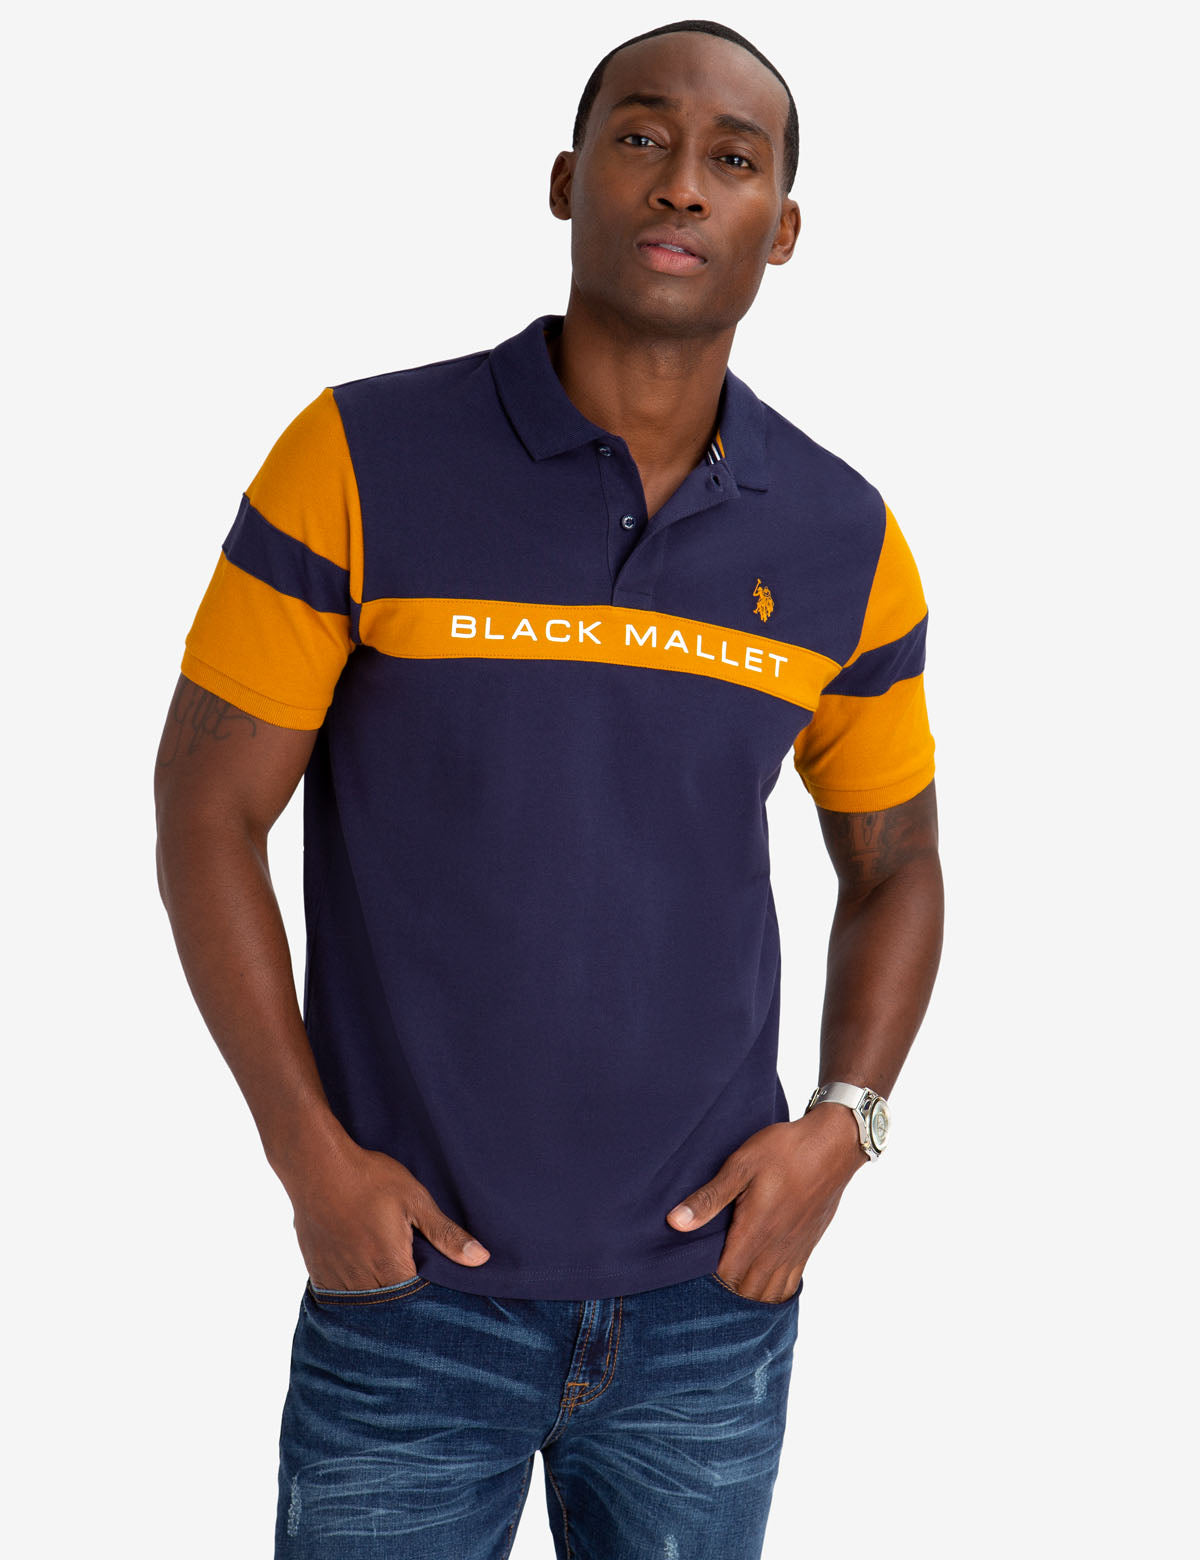 BLACK MALLET CLASSIC FIT CHEST STRIPE POLO SHIRT - U.S. Polo Assn.